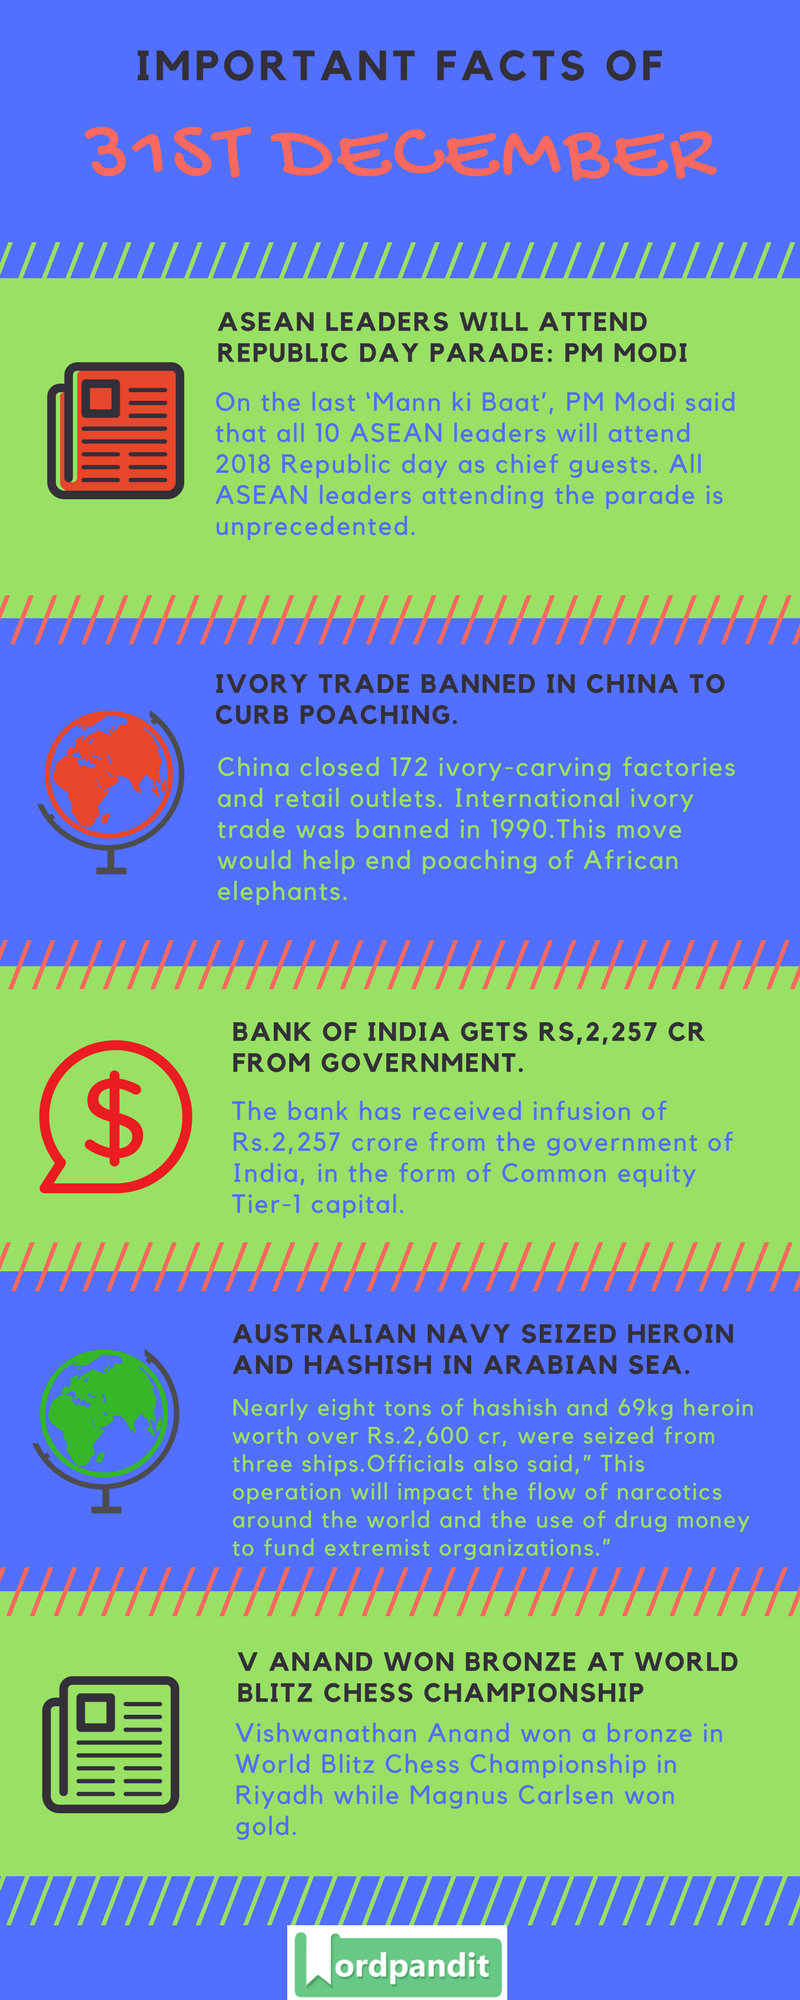 Daily-Current-Affairs-31-december-2017-Current-Affairs-Quiz-december-23-2017-Current-Affairs-Infographic